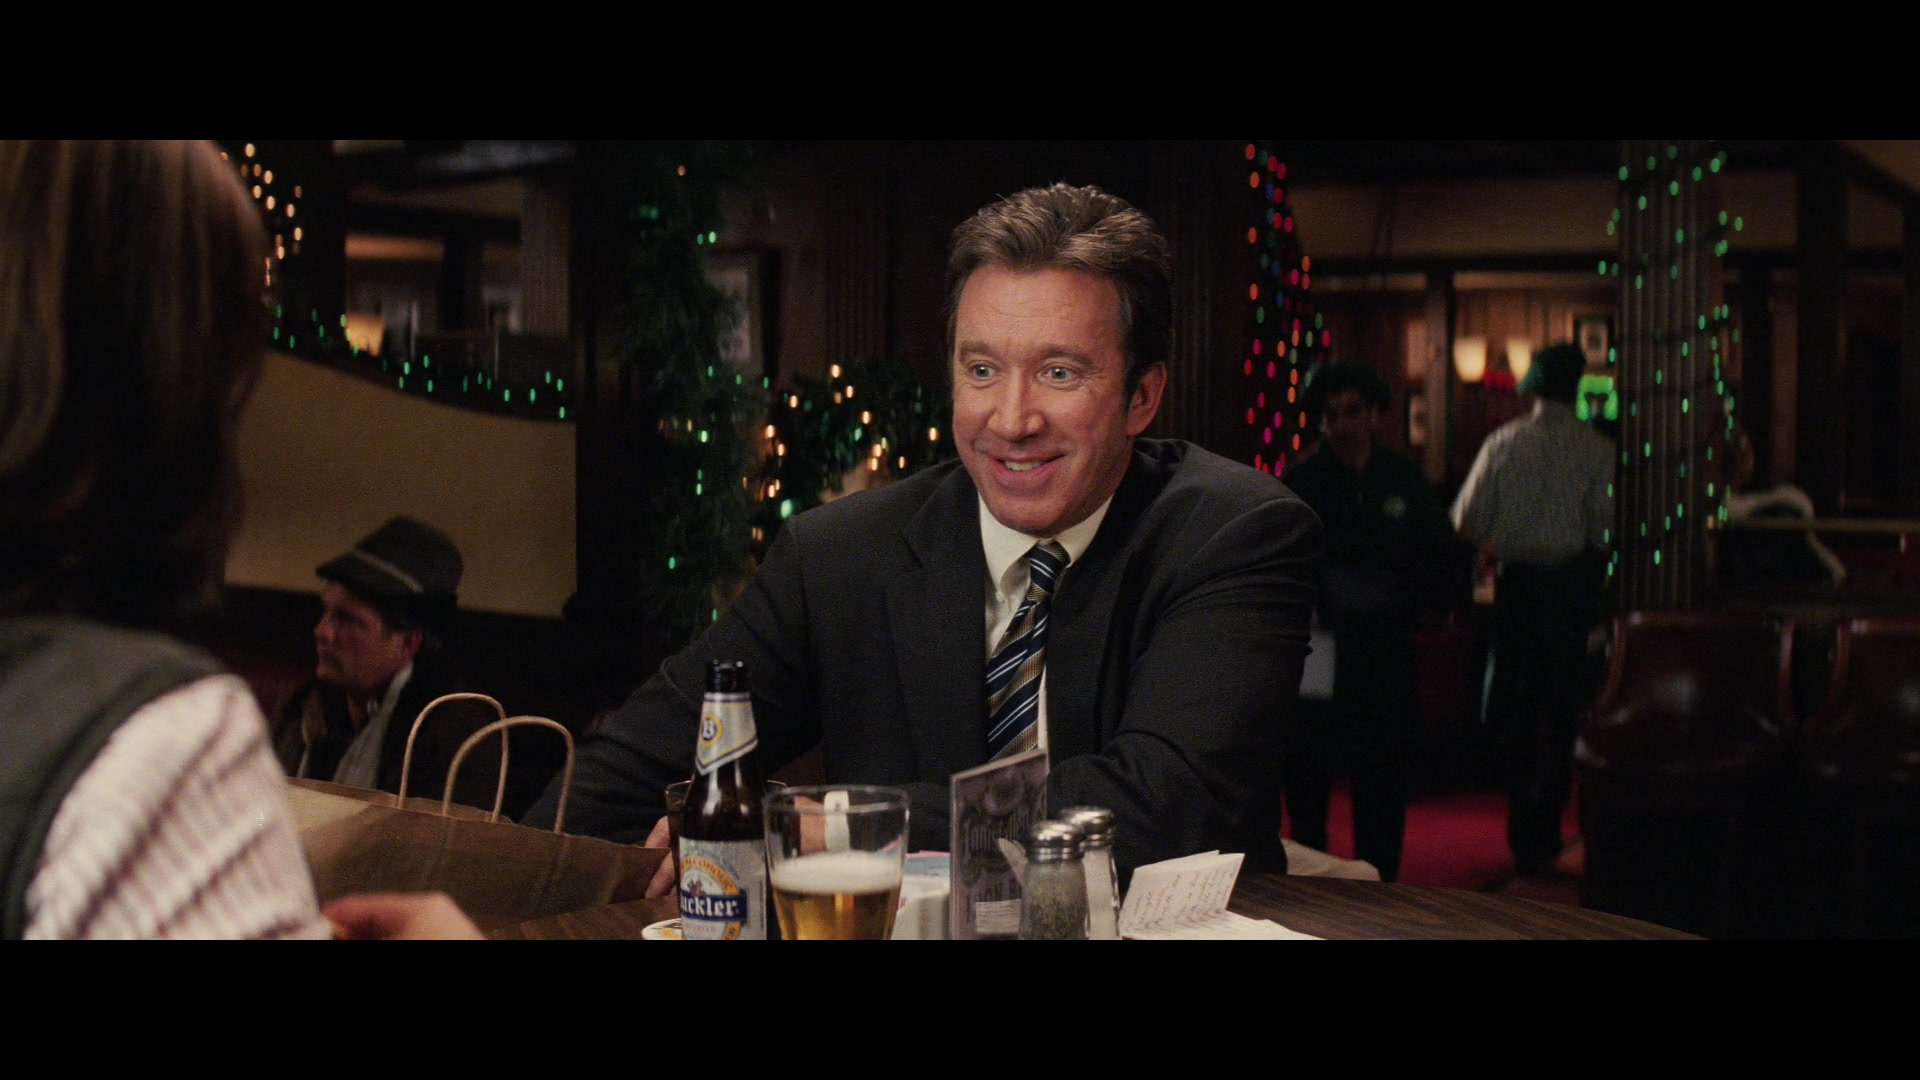 Christmas With The Kranks 2.Buckler Non Alcoholic Beer Drunk By Tim Allen In Christmas